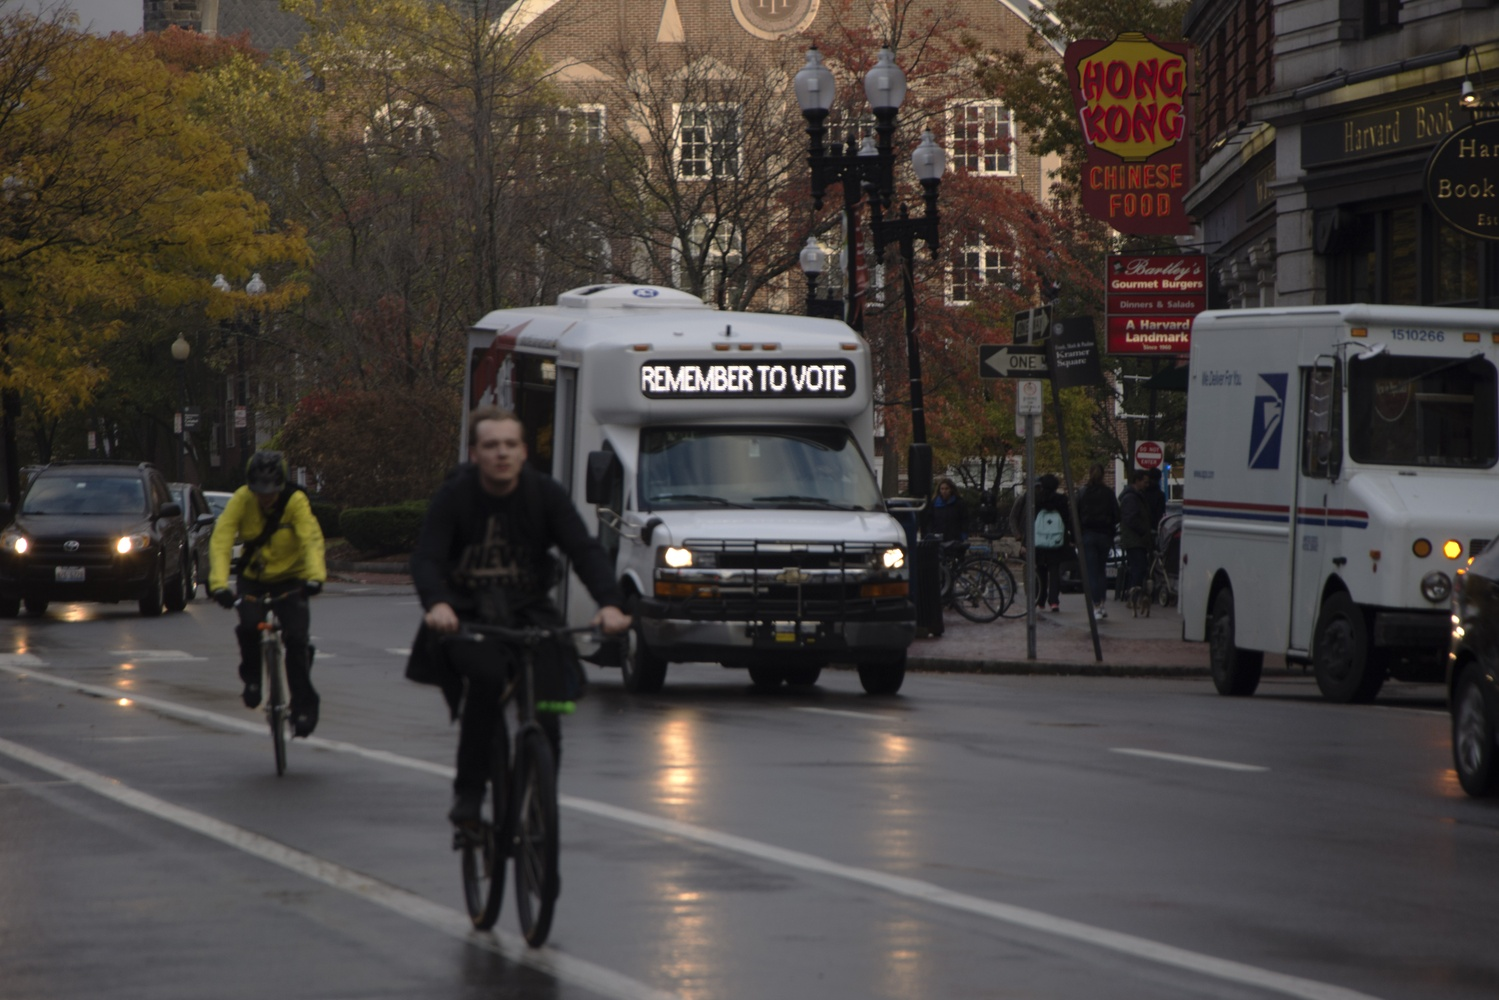 """A Daytime Van Service vehicle displays a """"Remember to Vote"""" message. In the run up to the Presidential Elections, Harvard Shuttles have been seen around campus alternating between their destinations and a reminder to vote."""